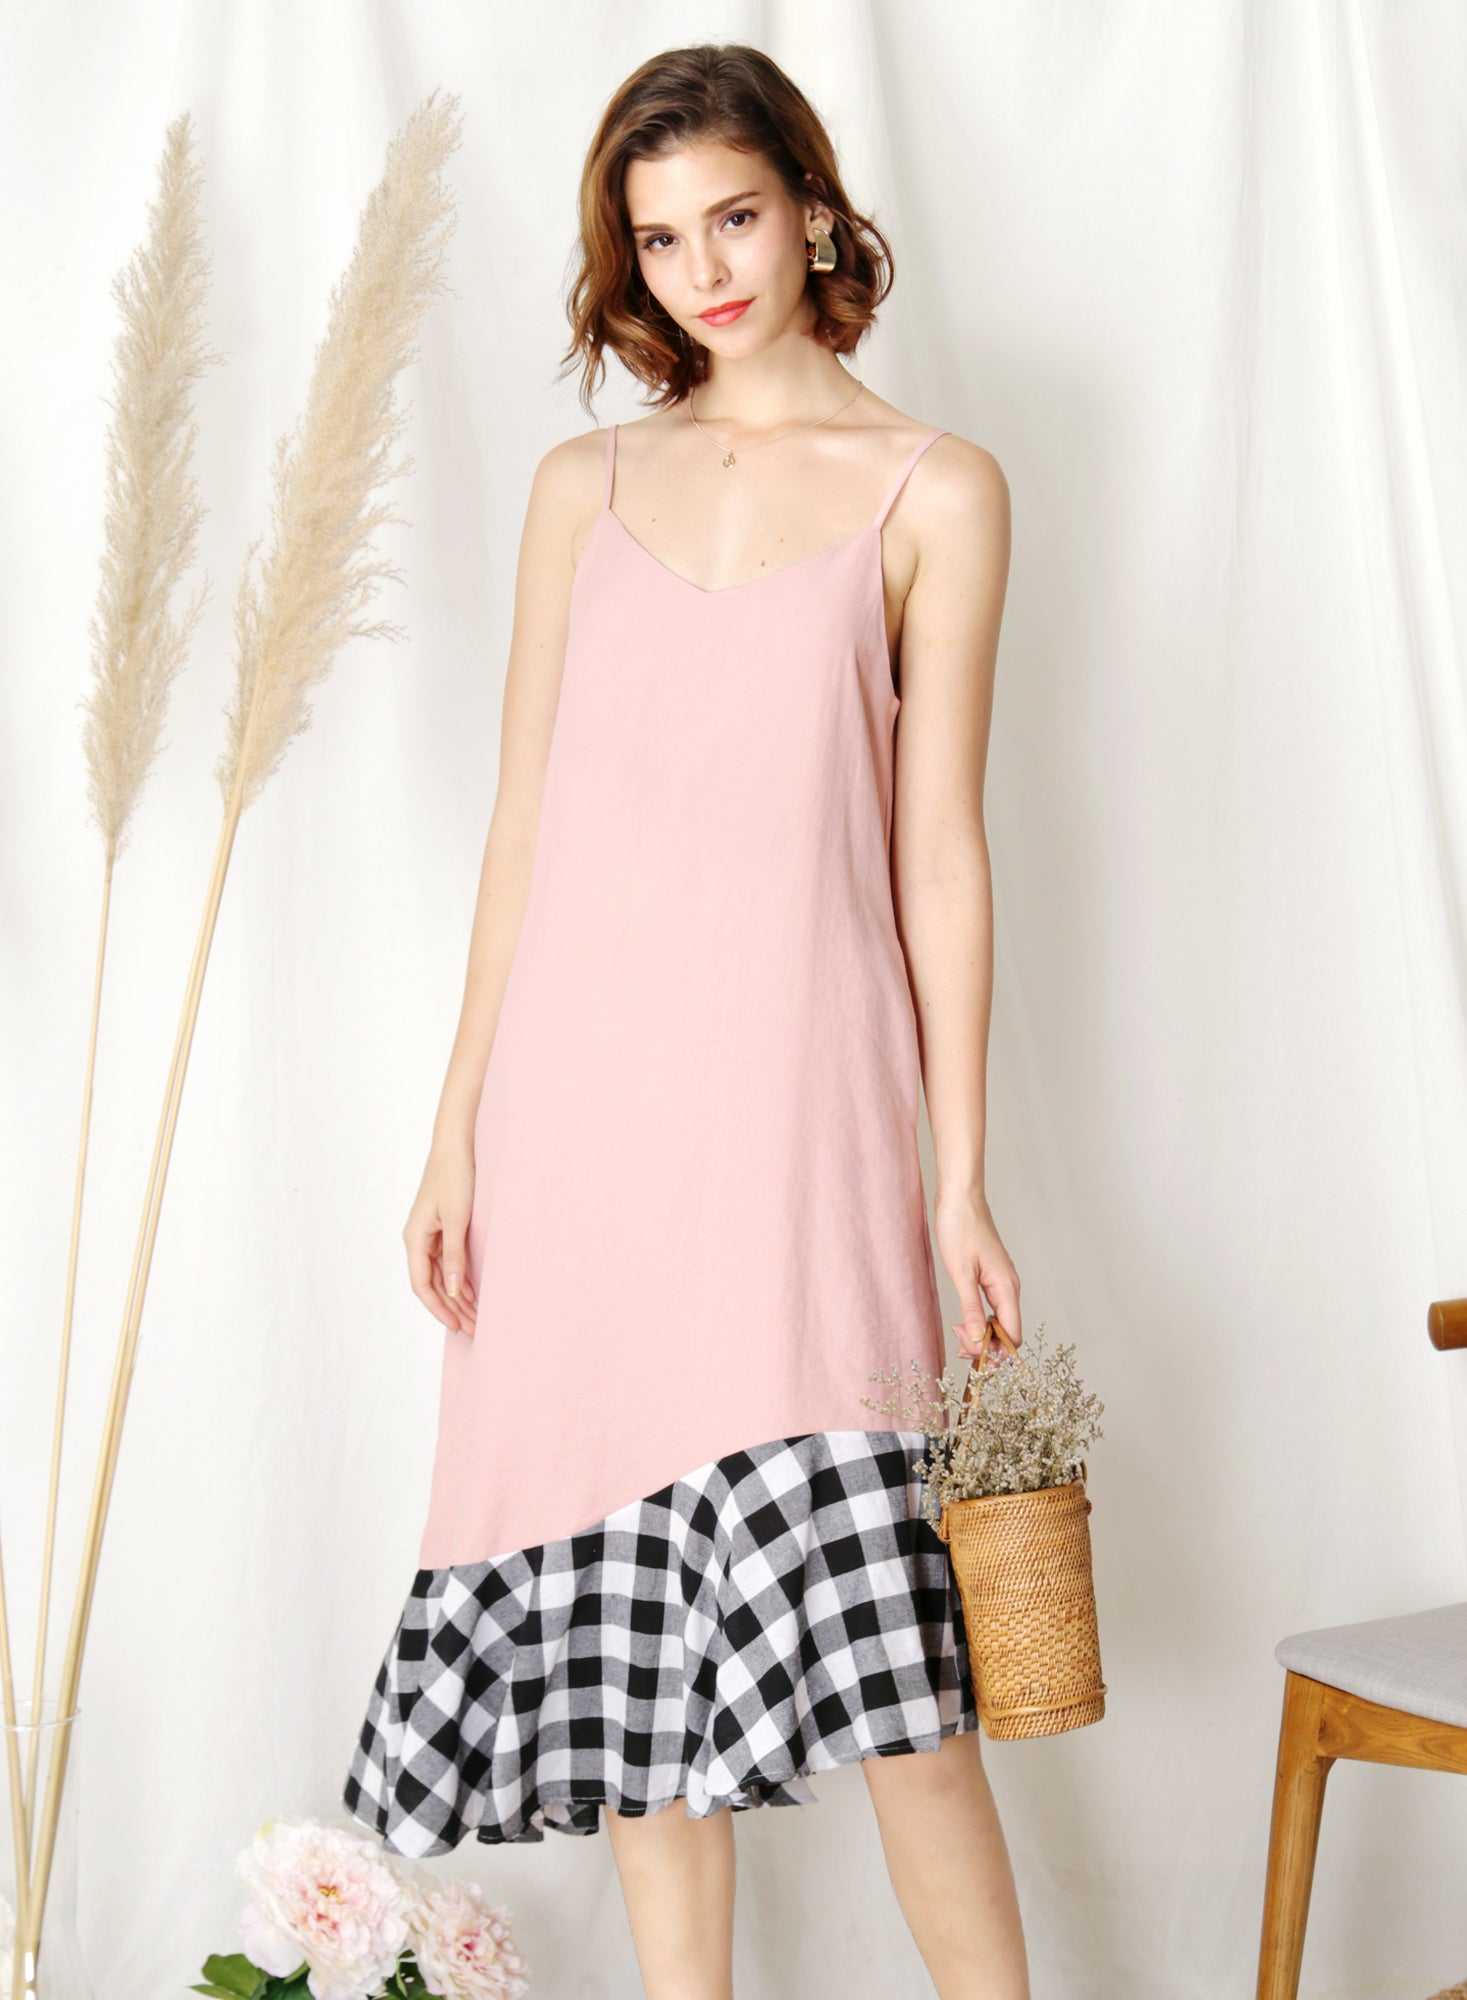 Sidelines Contrast Hem Maxi Dress (Pink/Black) - And Well Dressed